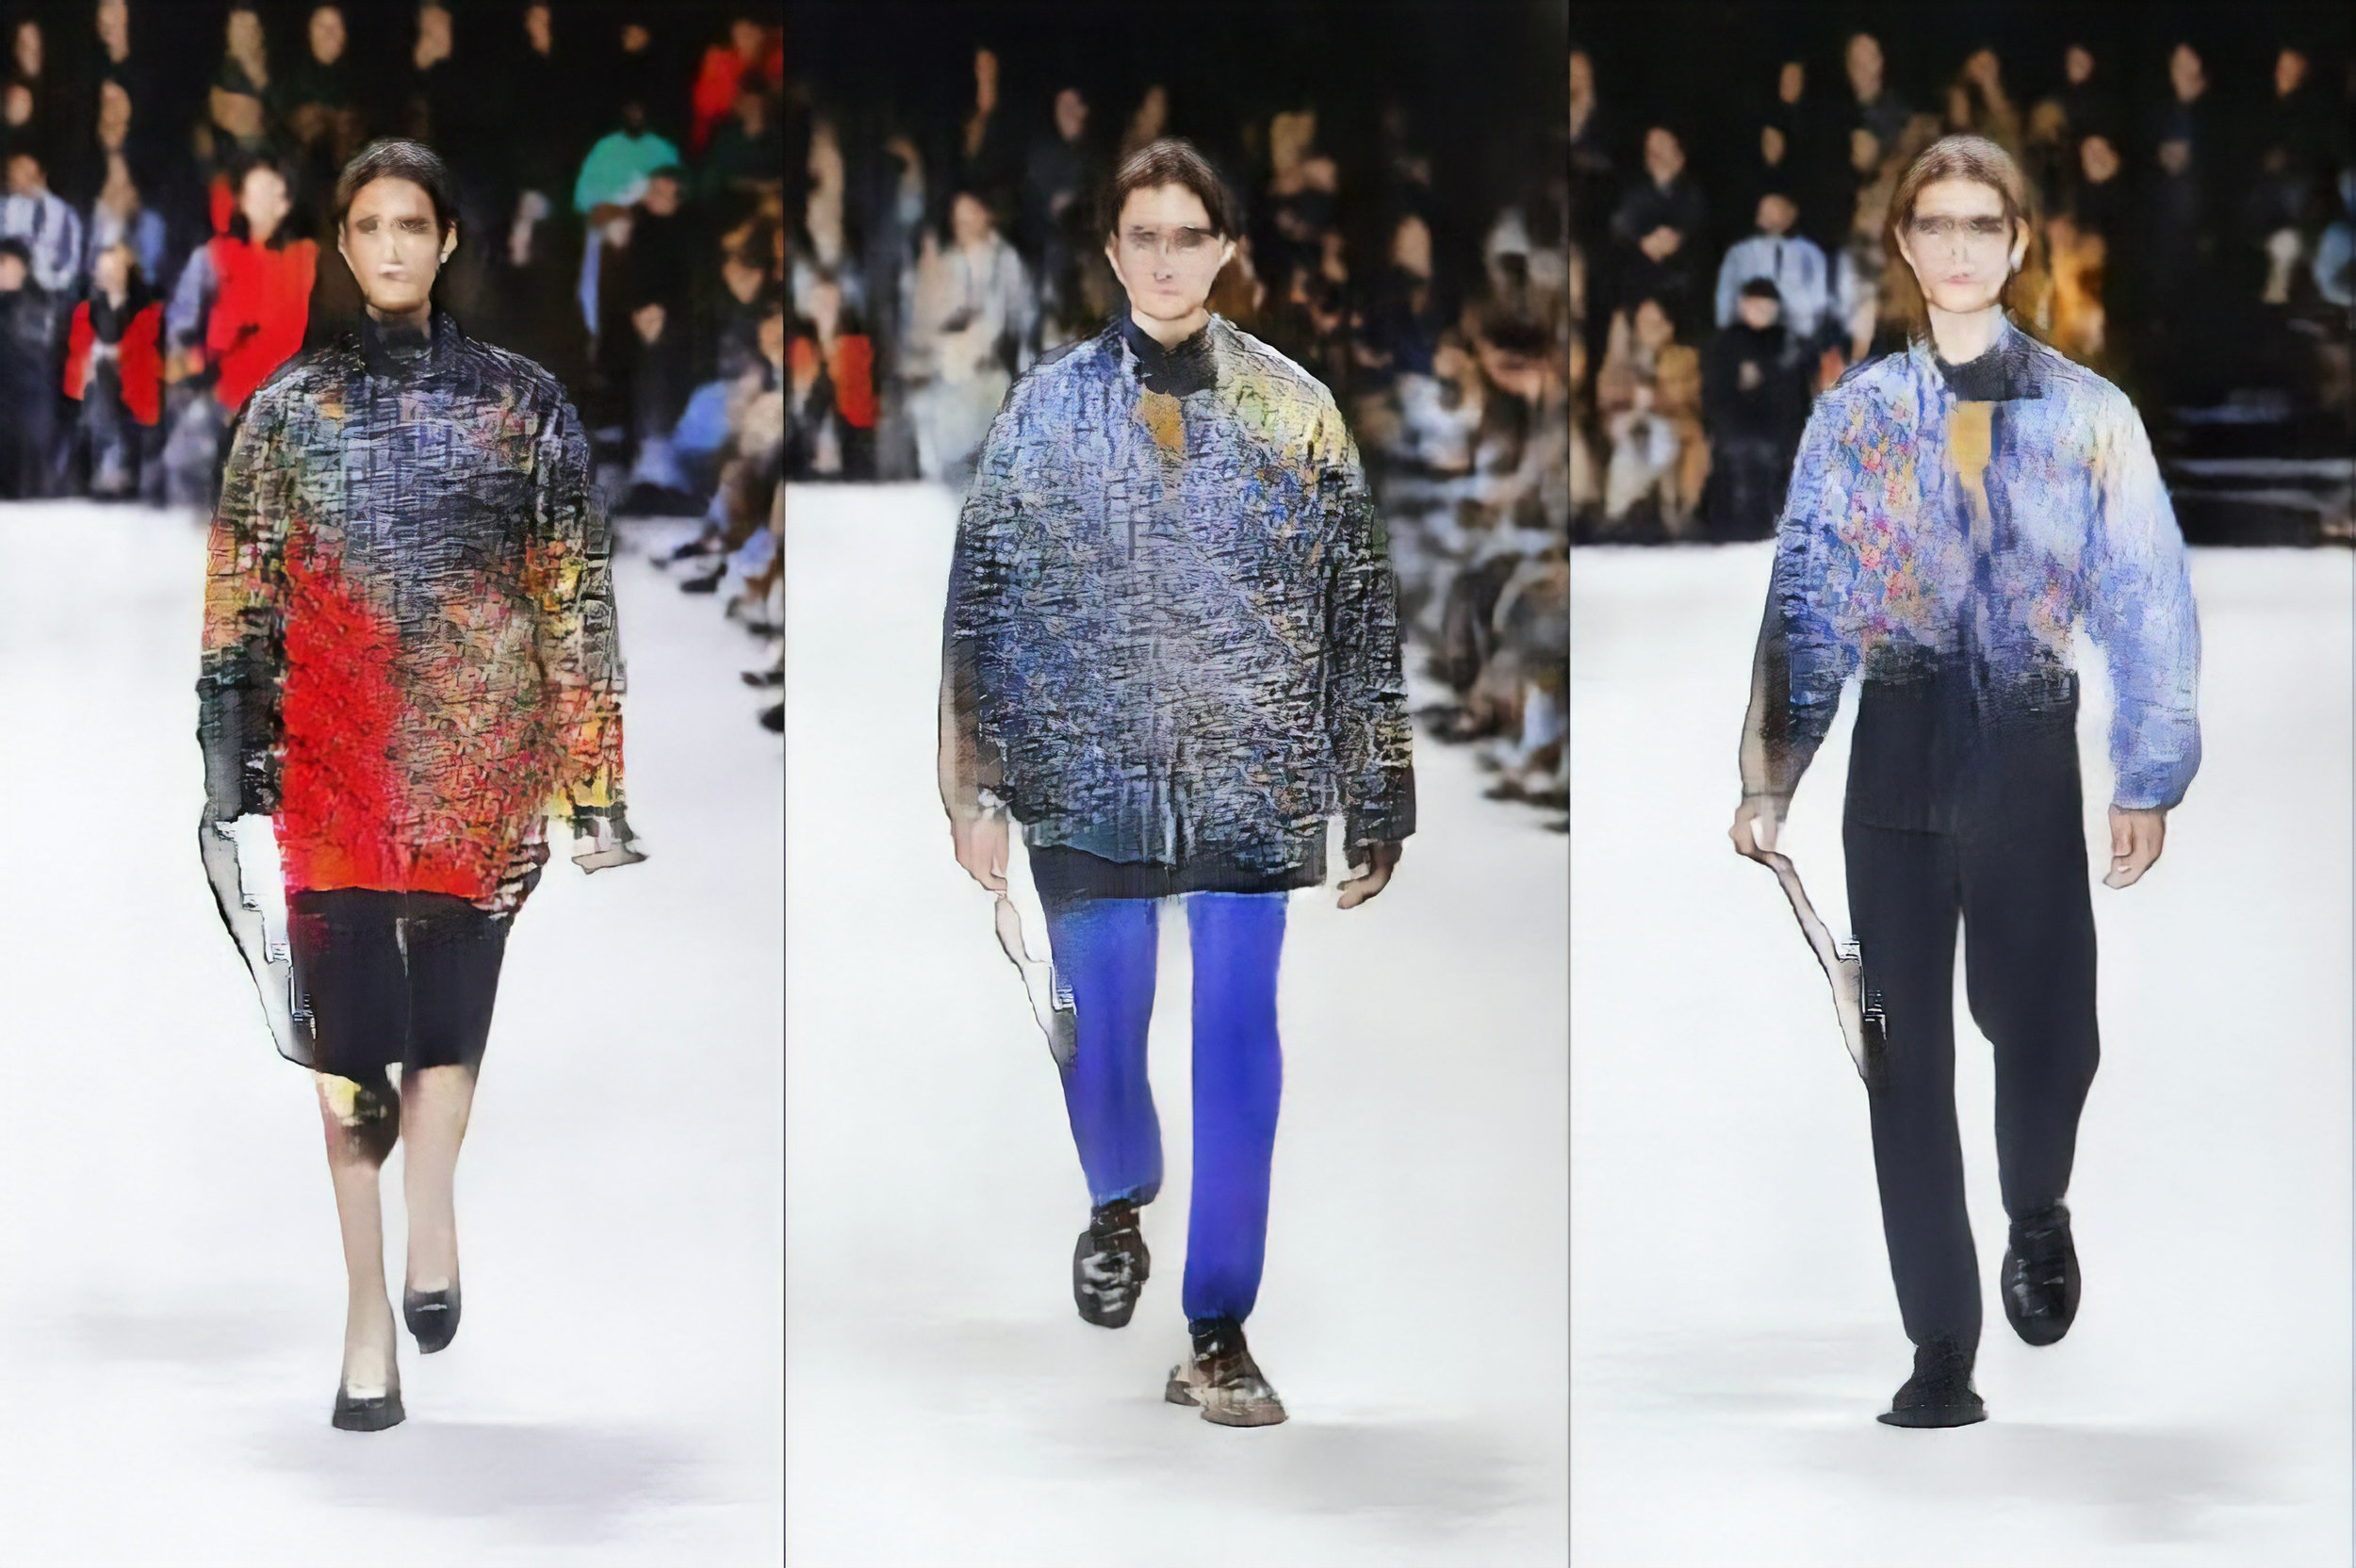 """ROBBIE BARRAT. """"KNITWEAR LINEUP #2 (FLAUNT EXCLUSIVE PIECE)"""" (2018). FASHION DESIGN GENERATED BY ARTIFICIAL INTELLIGENCE. COURTESY THE ARTIST."""